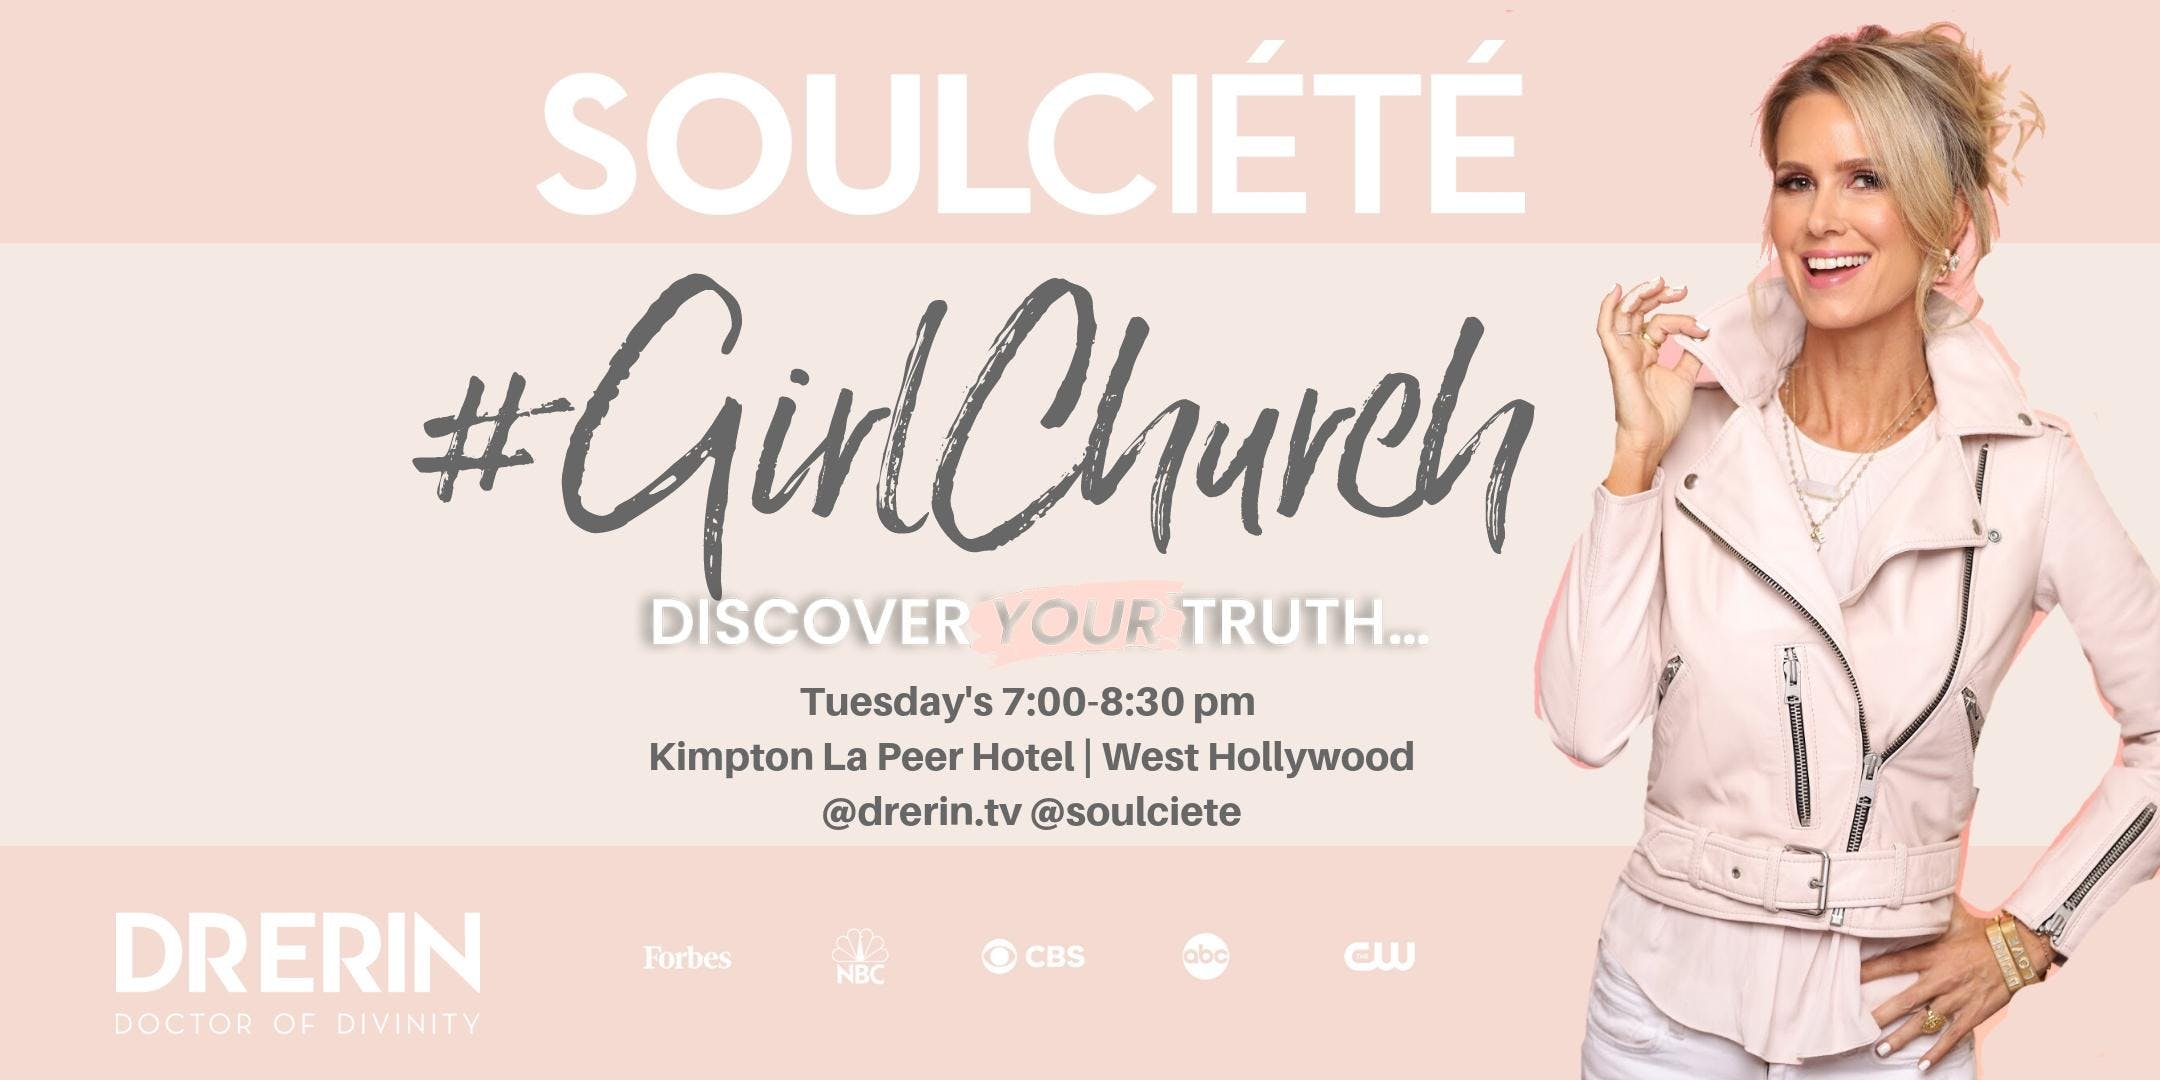 SOULCIÉTÉ #GirlChurch